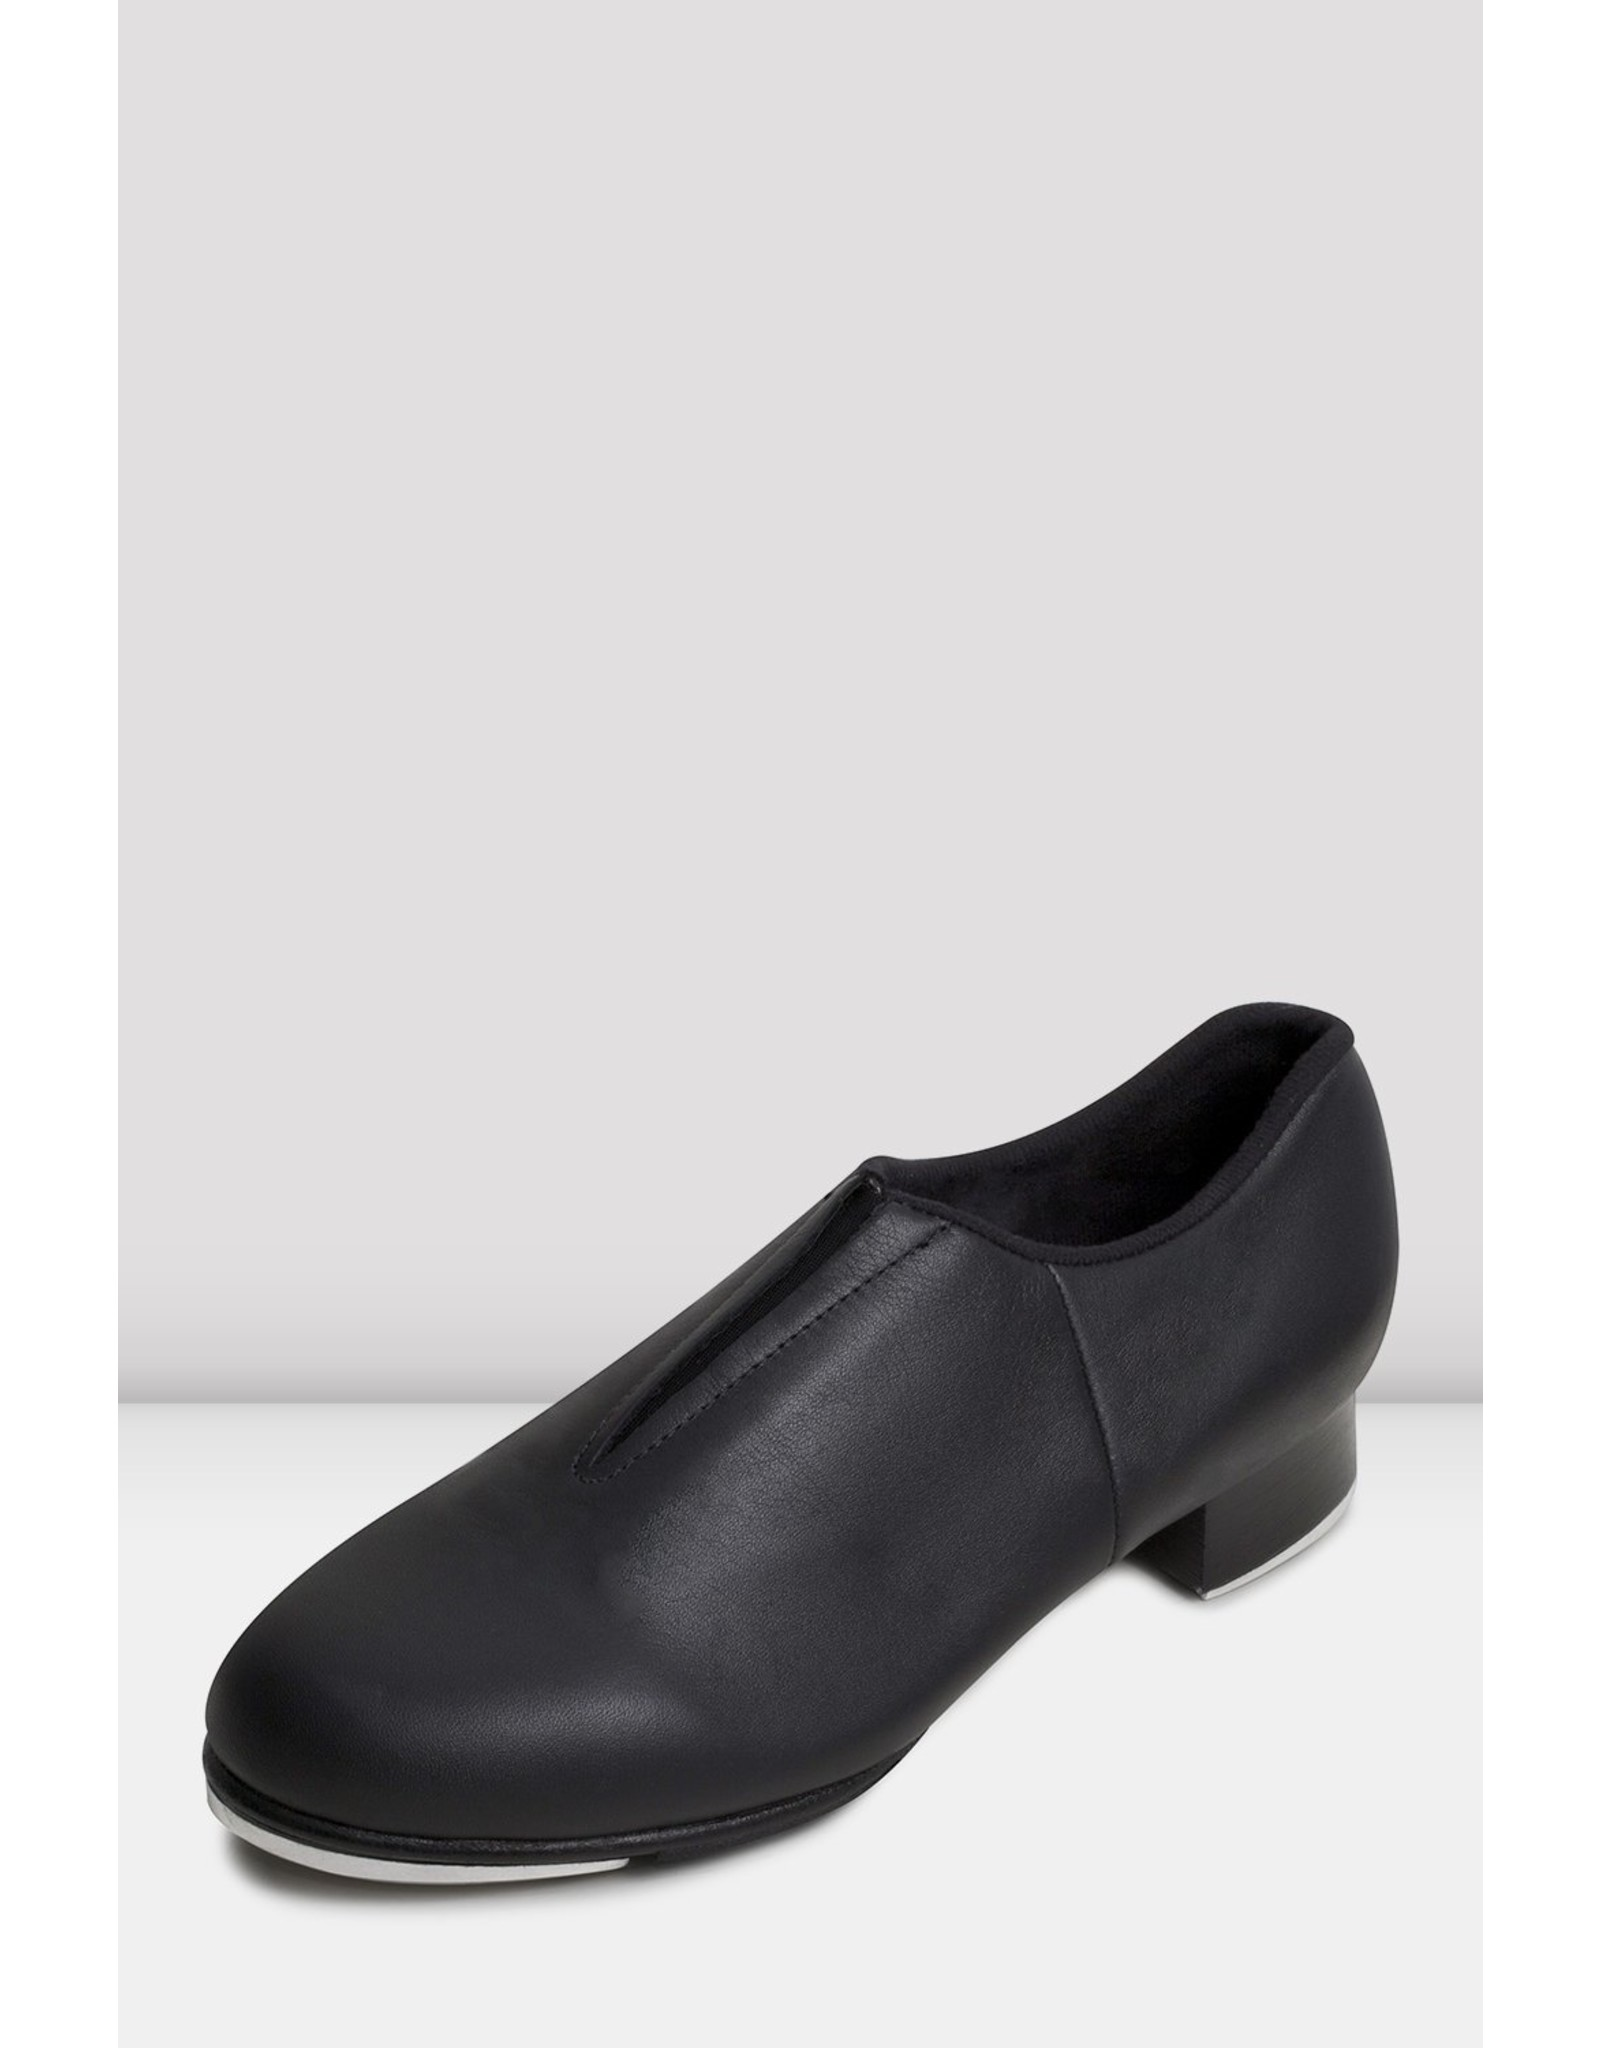 GIRLS BLOCH SLIP ON TAP - SO398G